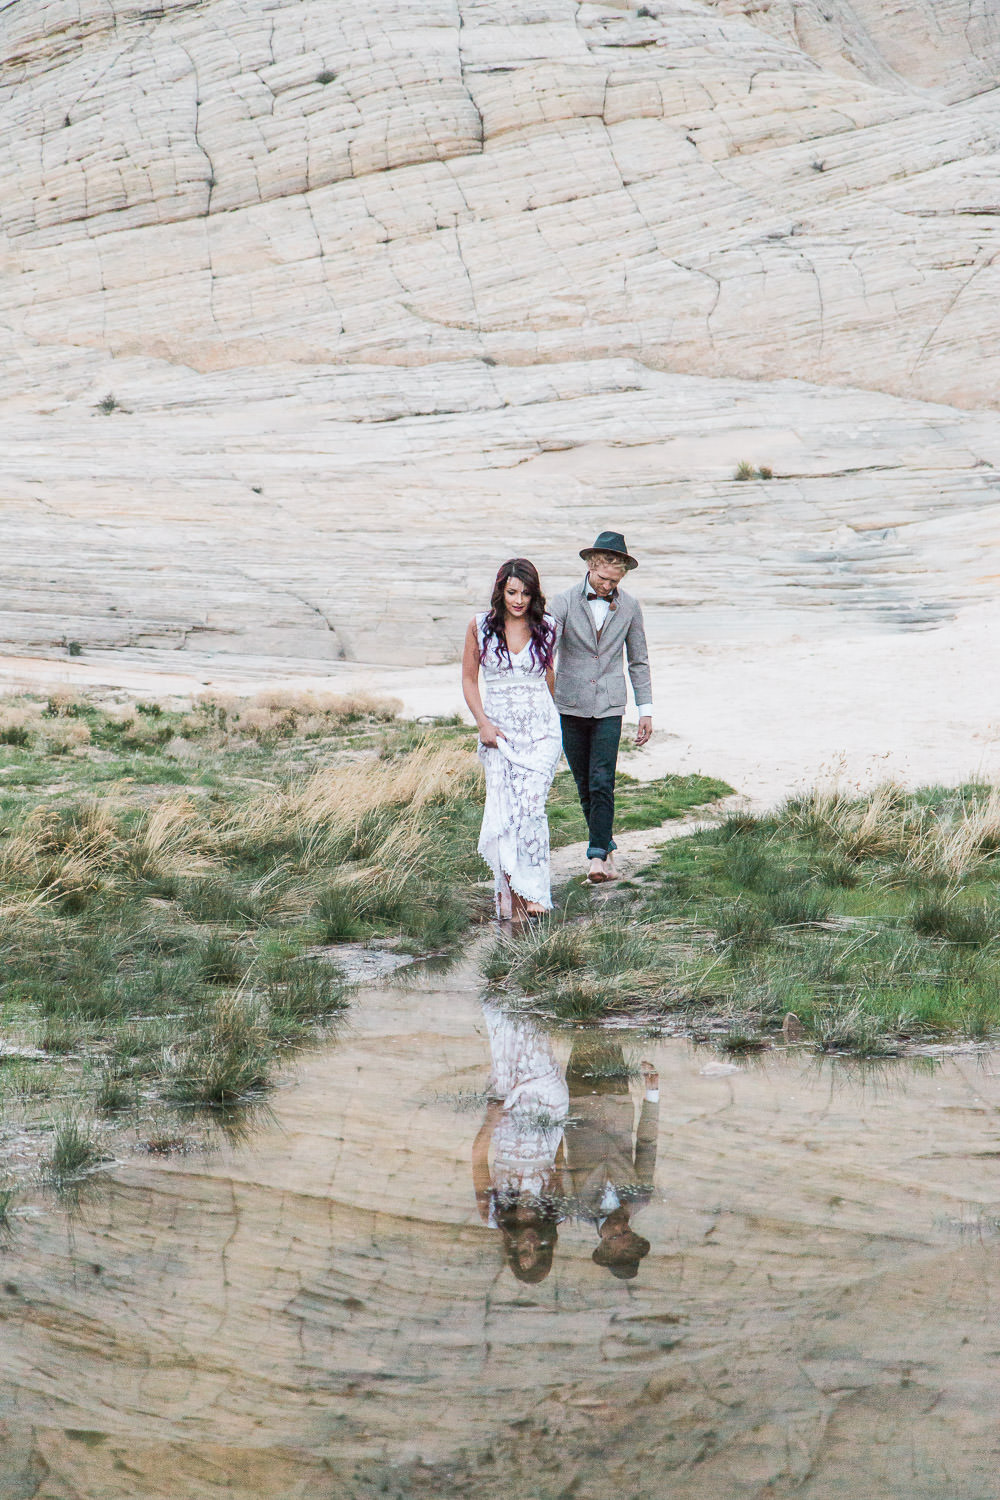 Traveling wedding photographers Kyle and Tori Sheppard